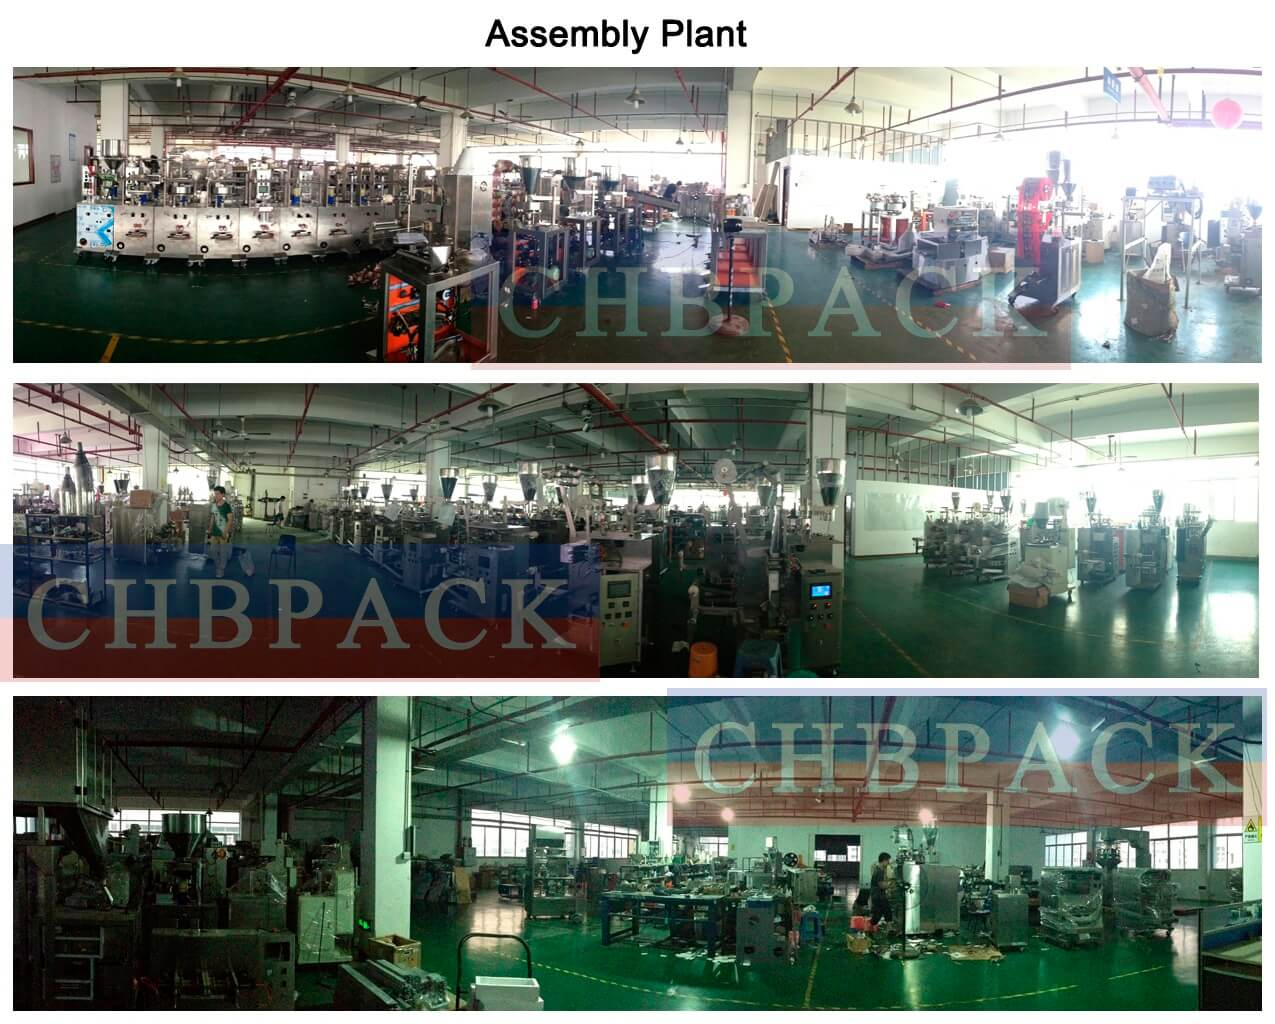 CHBPACK Assembly Plant